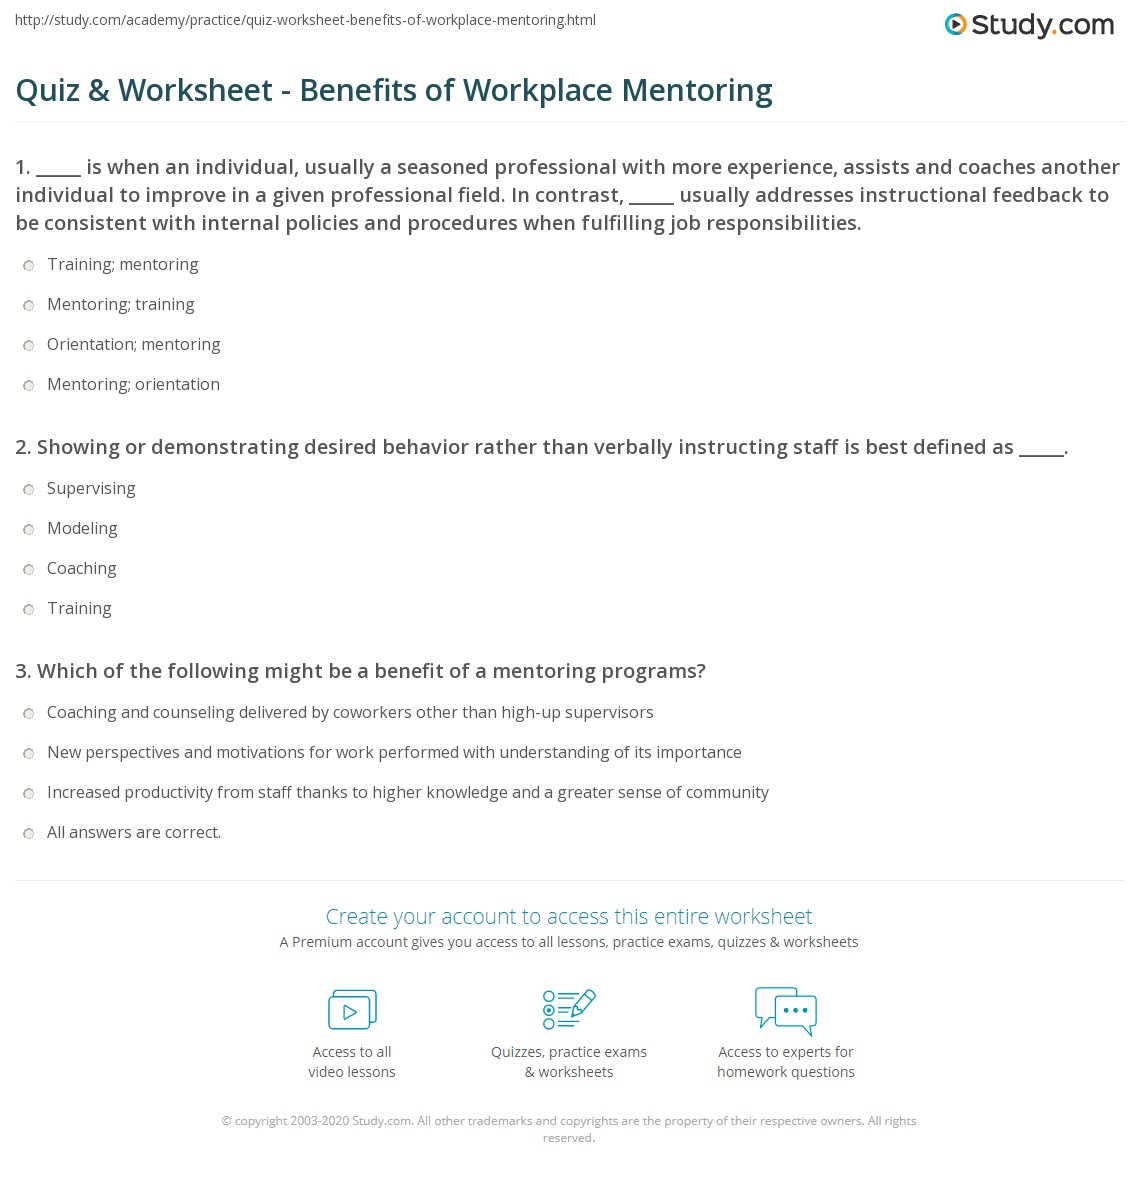 Worksheets Mentoring Worksheets collection of mentoring worksheets adriaticatoursrl quiz worksheet benefits workplace study com